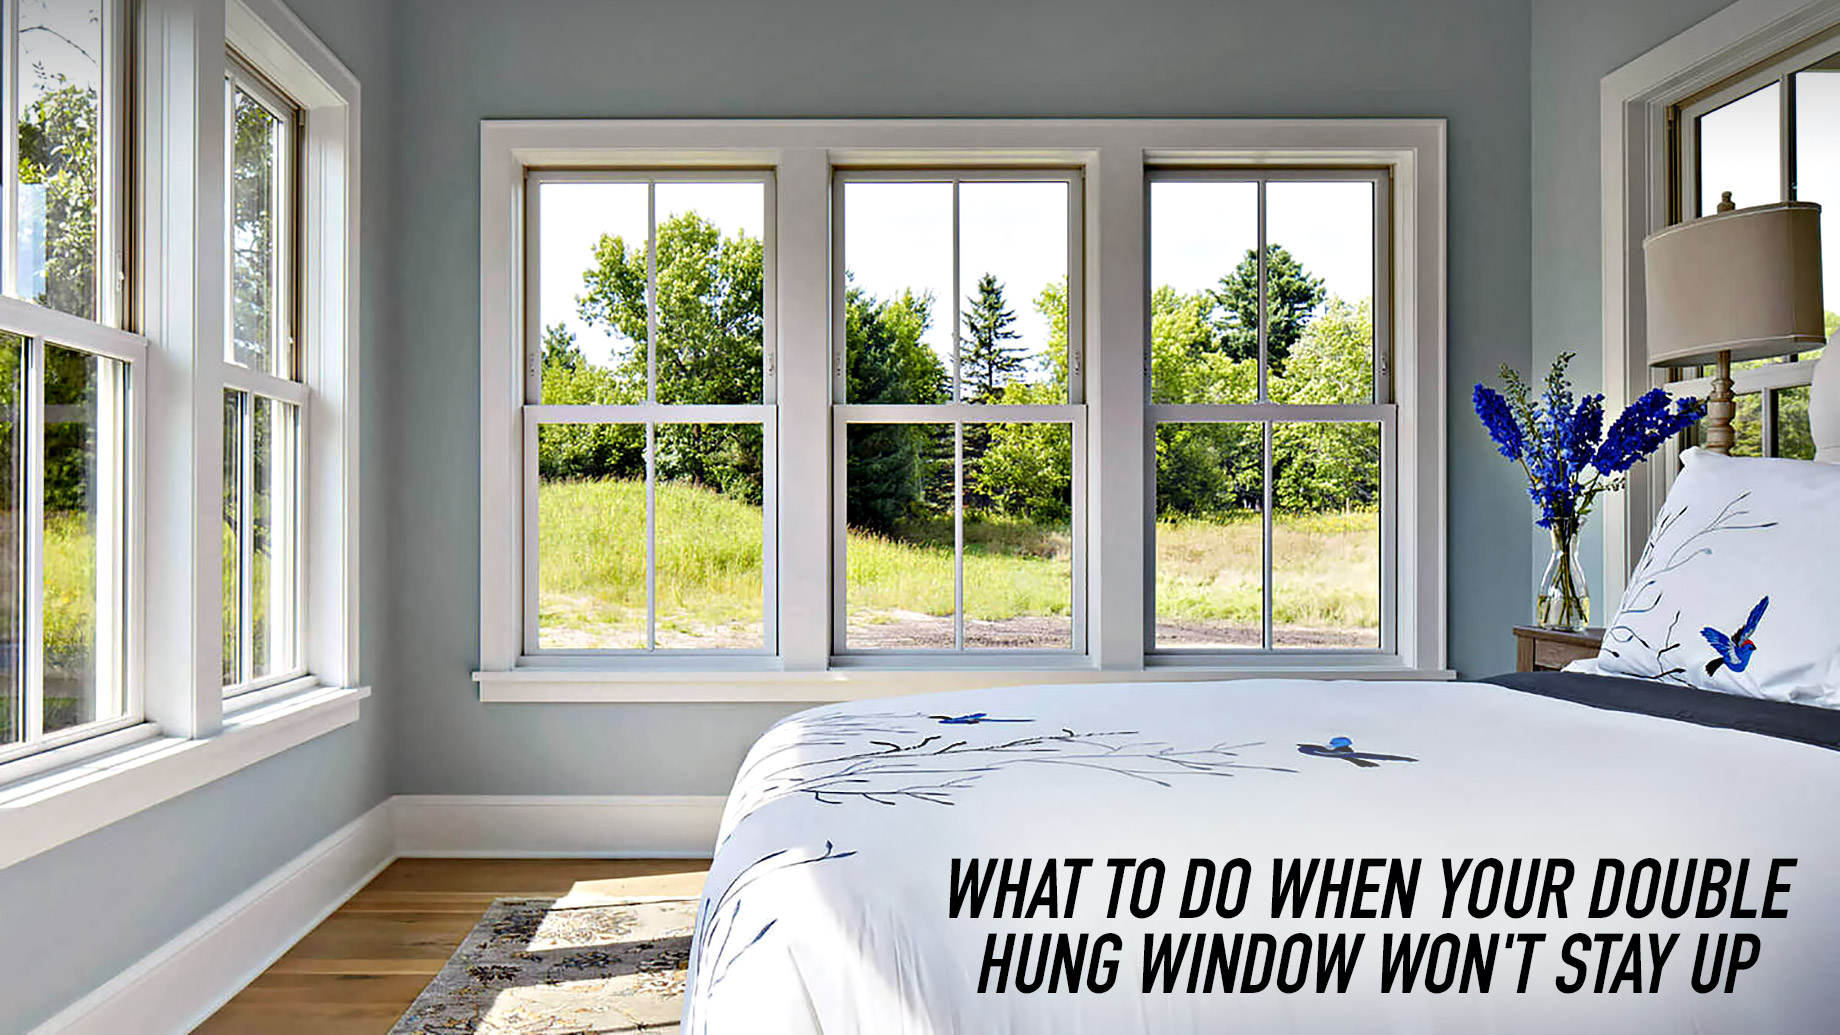 What to Do When Your Double Hung Window Won't Stay Up